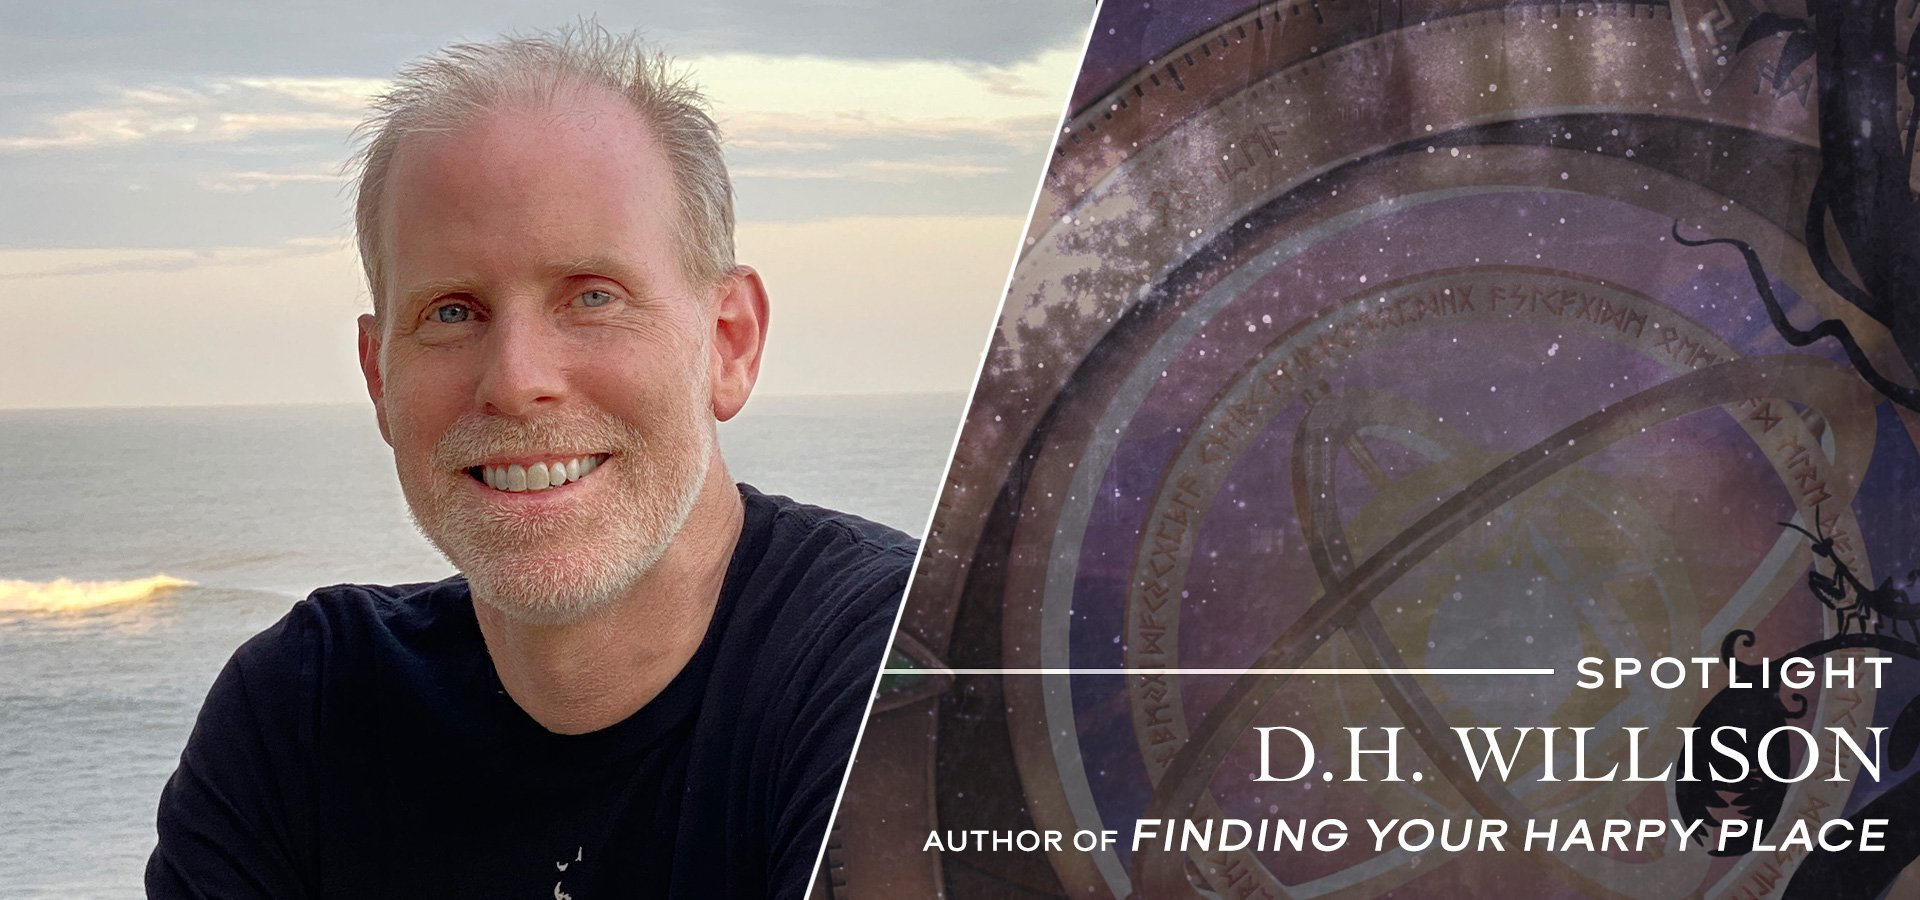 Finding Your Harpy Place by D. H. Willison